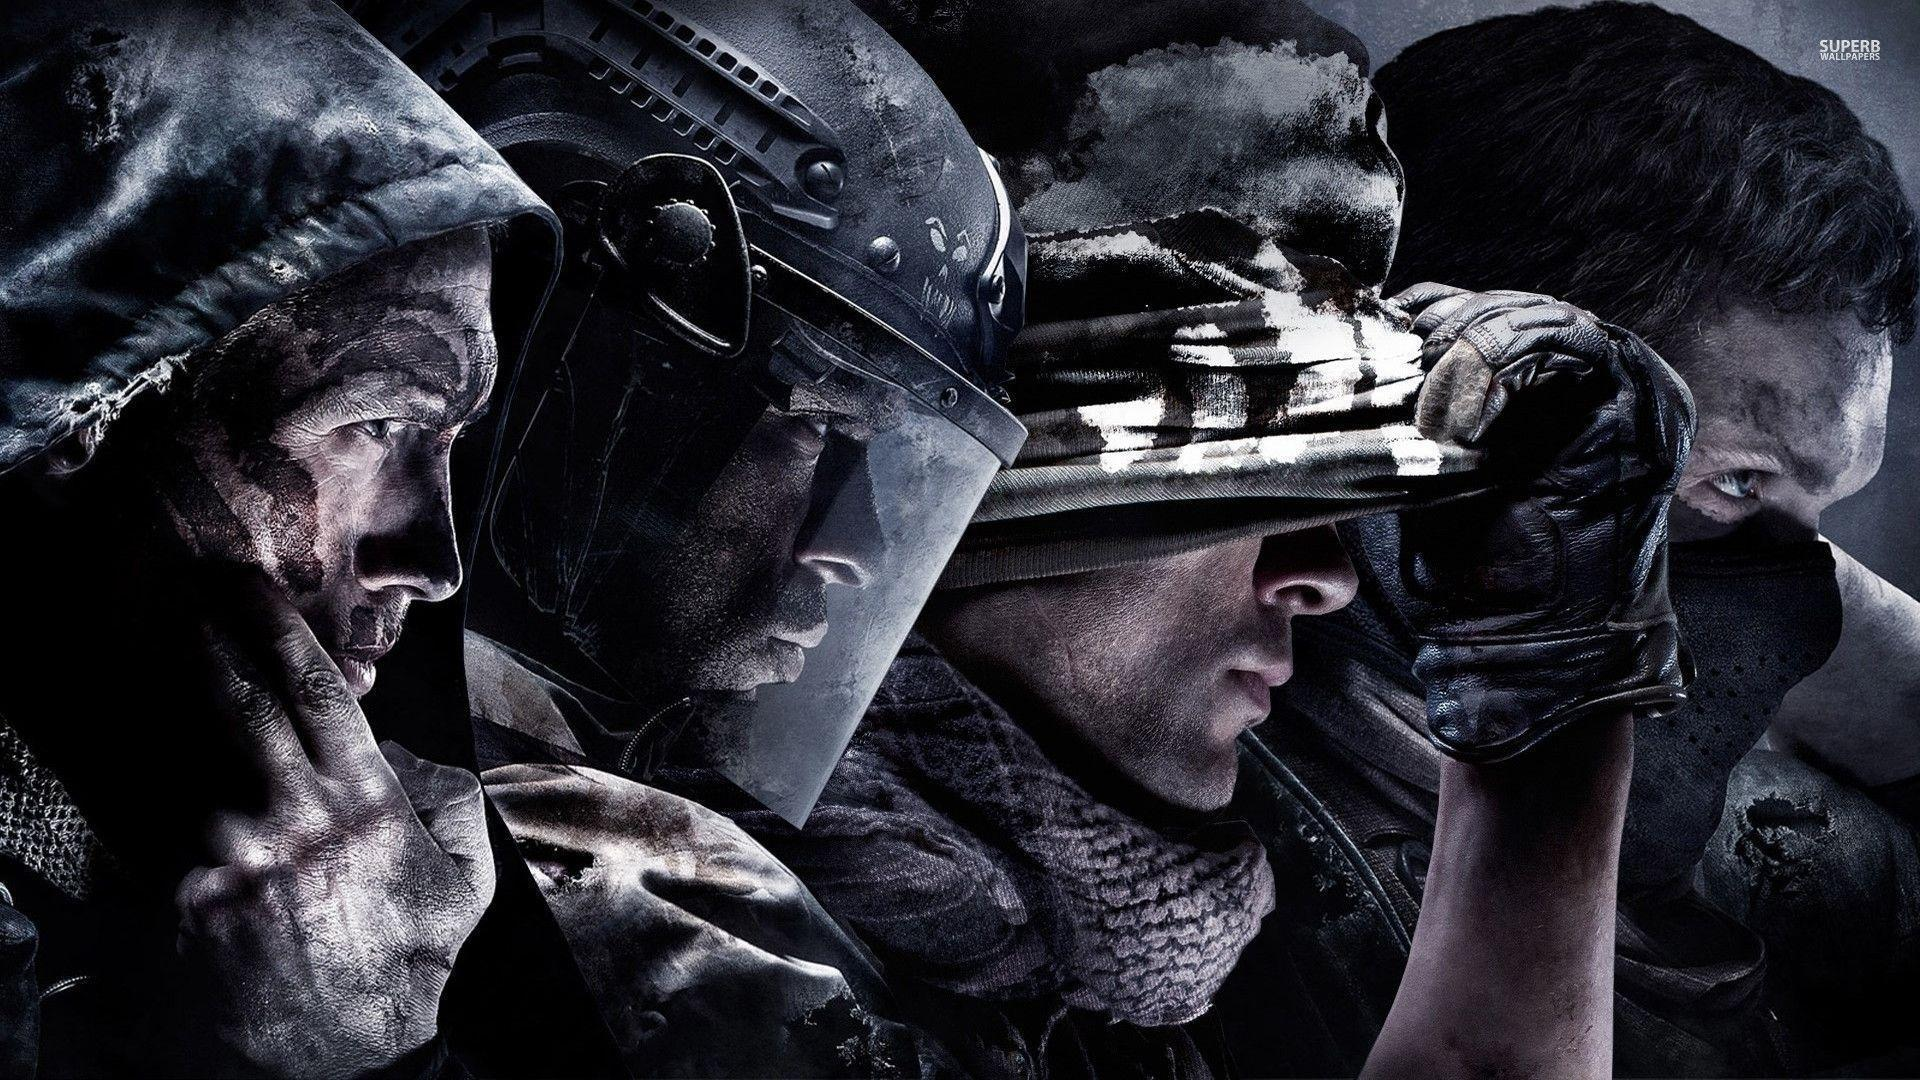 Image Result For Call Of Duty Wallpaper Best Of Call Of Duty Ghosts Wallpapers Wallpaper Cave